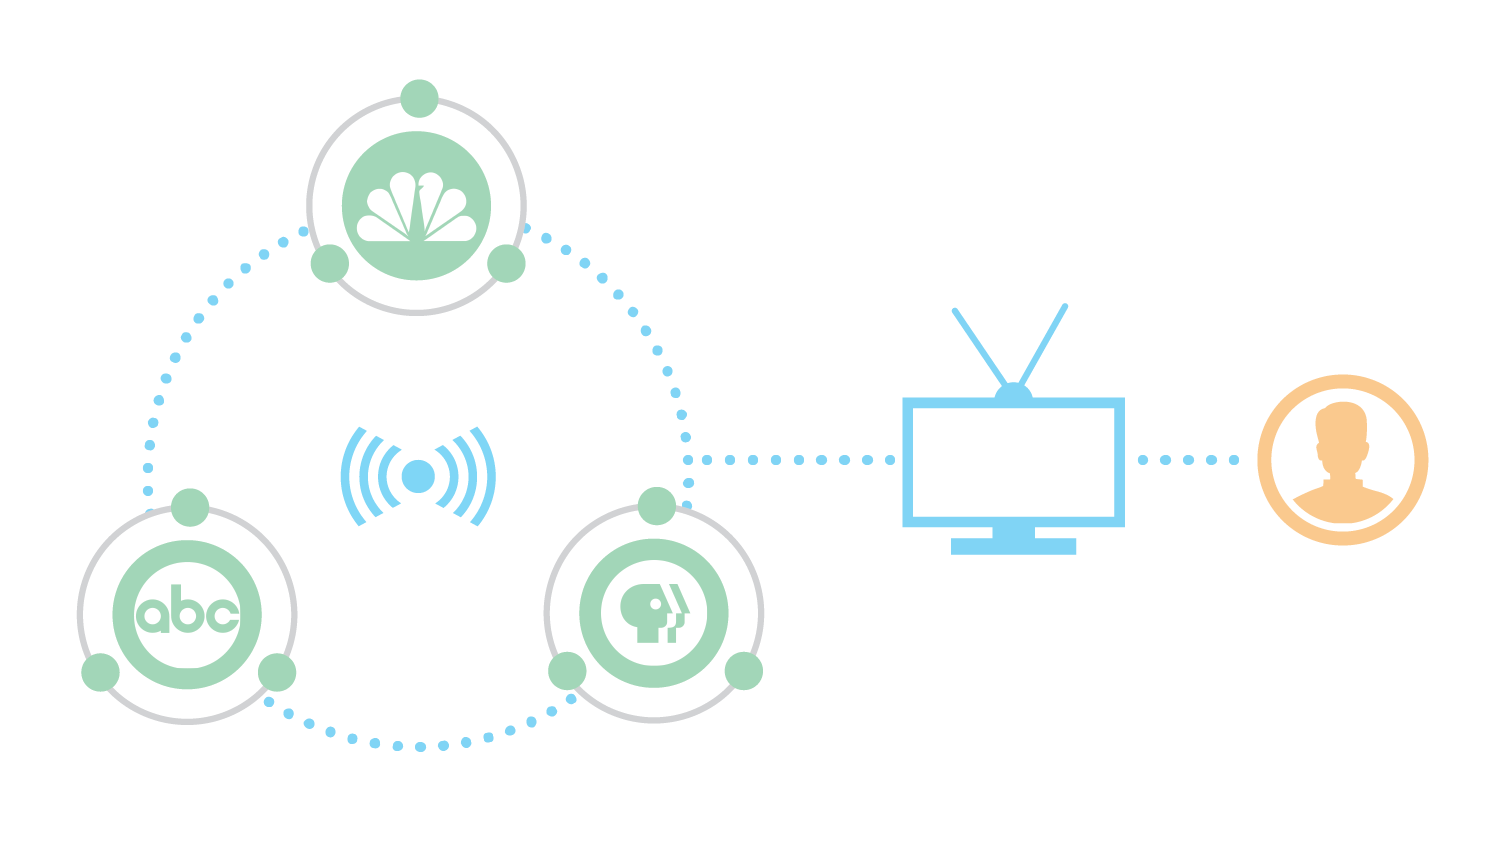 We began our research by looking at how people were able to access content. In the traditional TV consumption model, a select amount of content was created by the networks and then broadcasted directly over the air, picked up by the user's antenna, and displayed directly on their TV.